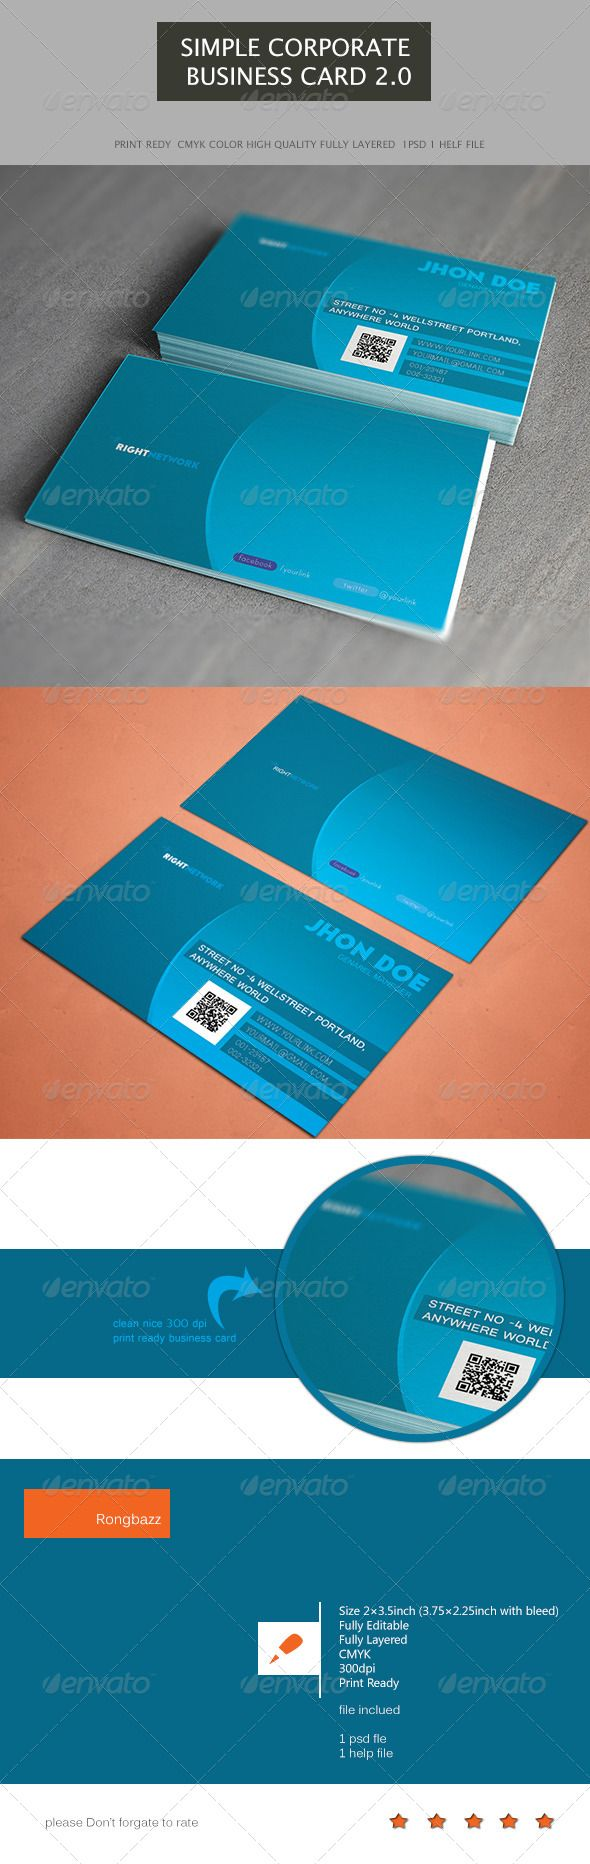 76 best print templates images on pinterest print templates simple corporate business card 20 magicingreecefo Choice Image